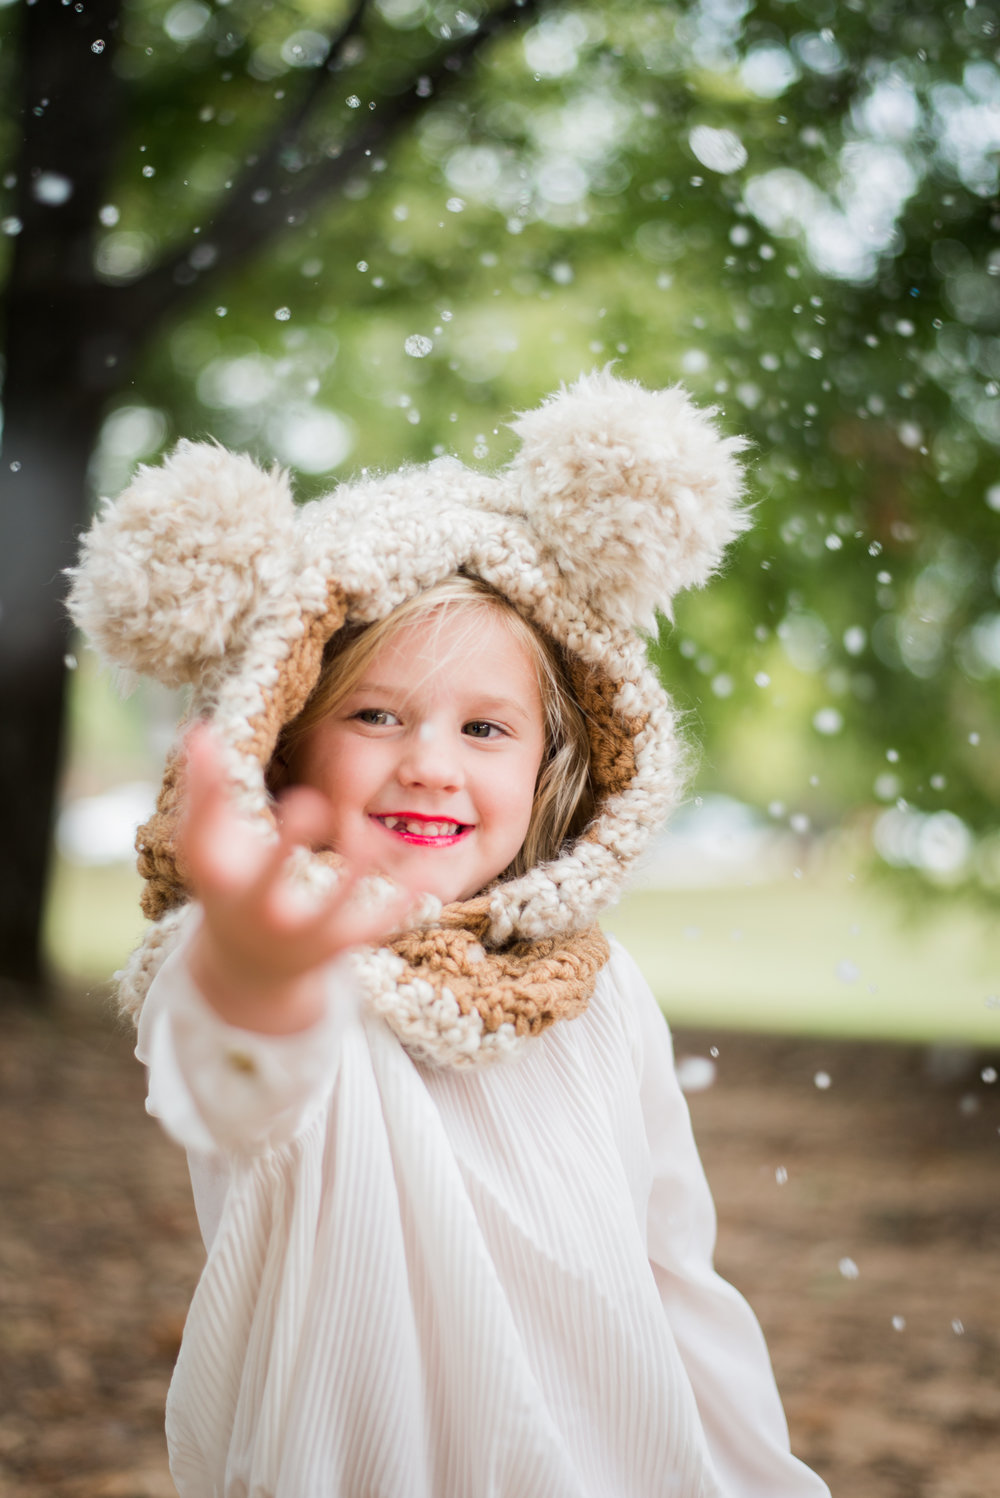 Arkansas Snow Family Photos - Natalie Smith Photography